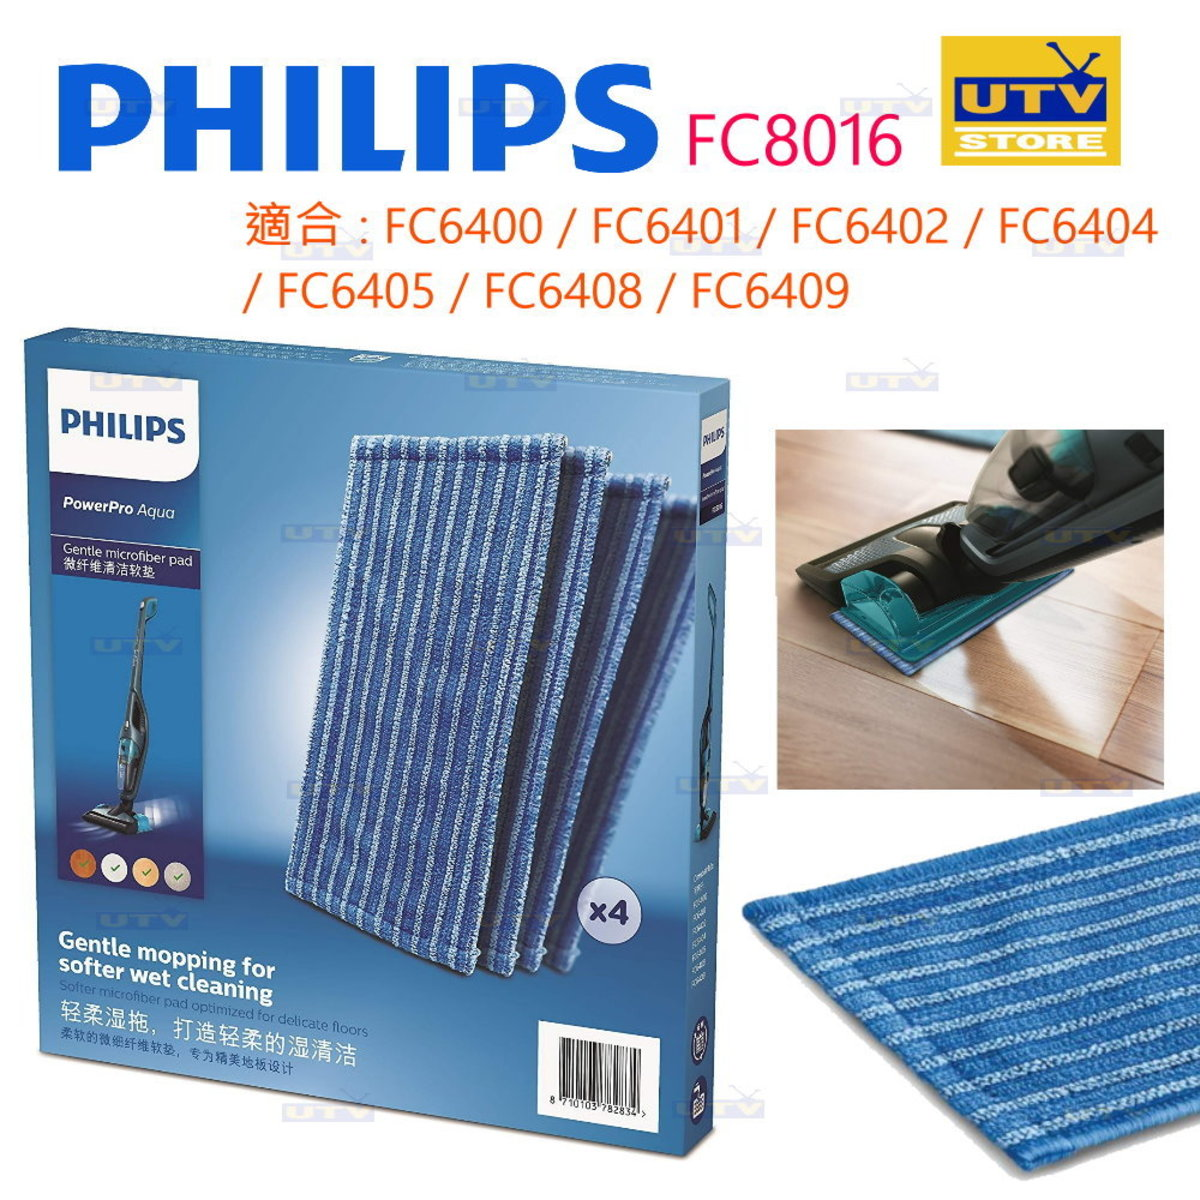 FC8016 Gentle mopping for softer wet cleaning